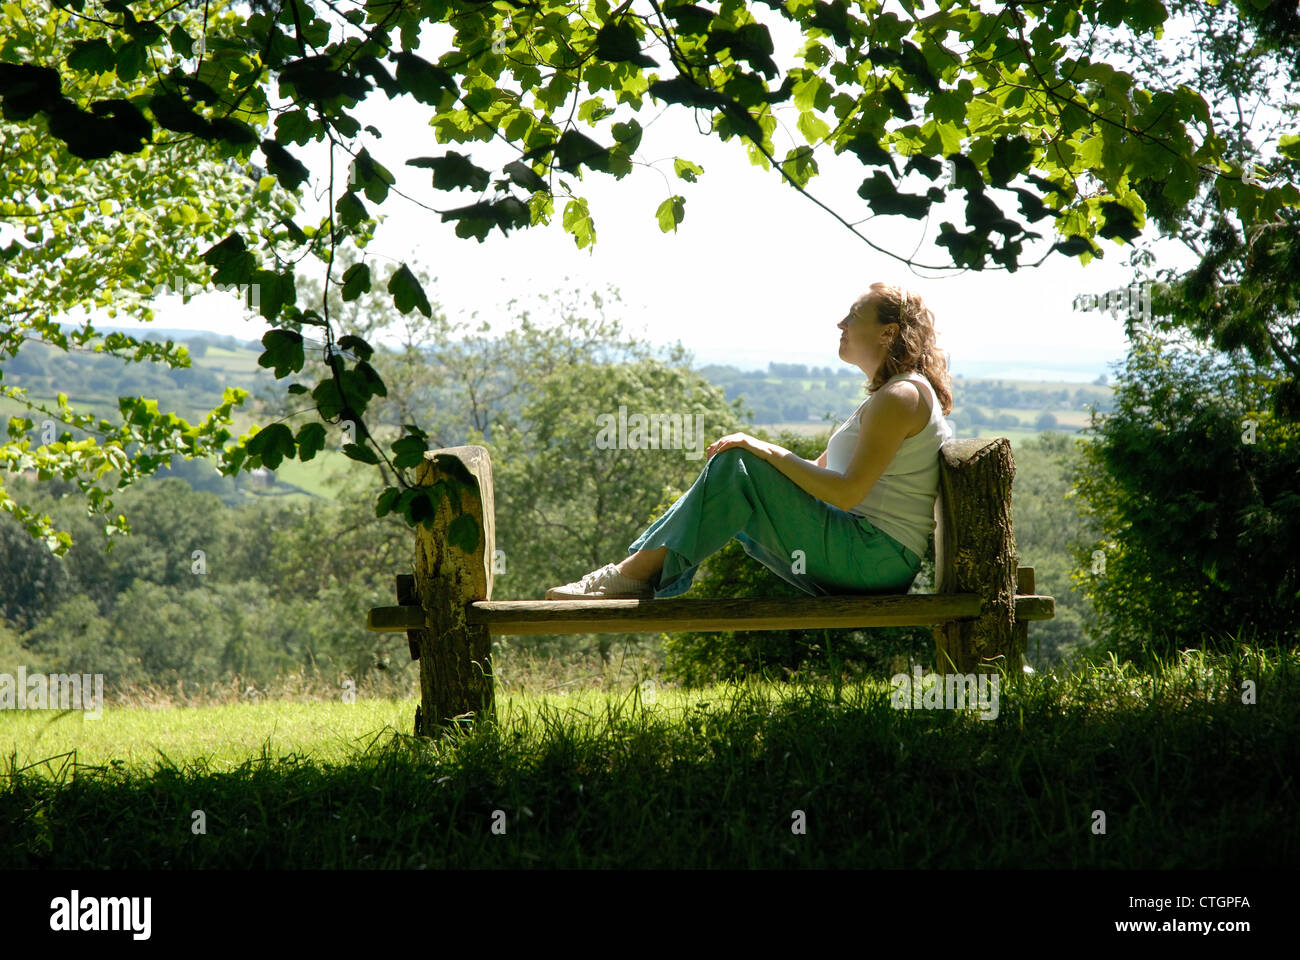 A woman enjoys the sunshine at Hergest Croft Gardens, Kington, Herefordshire. - Stock Image